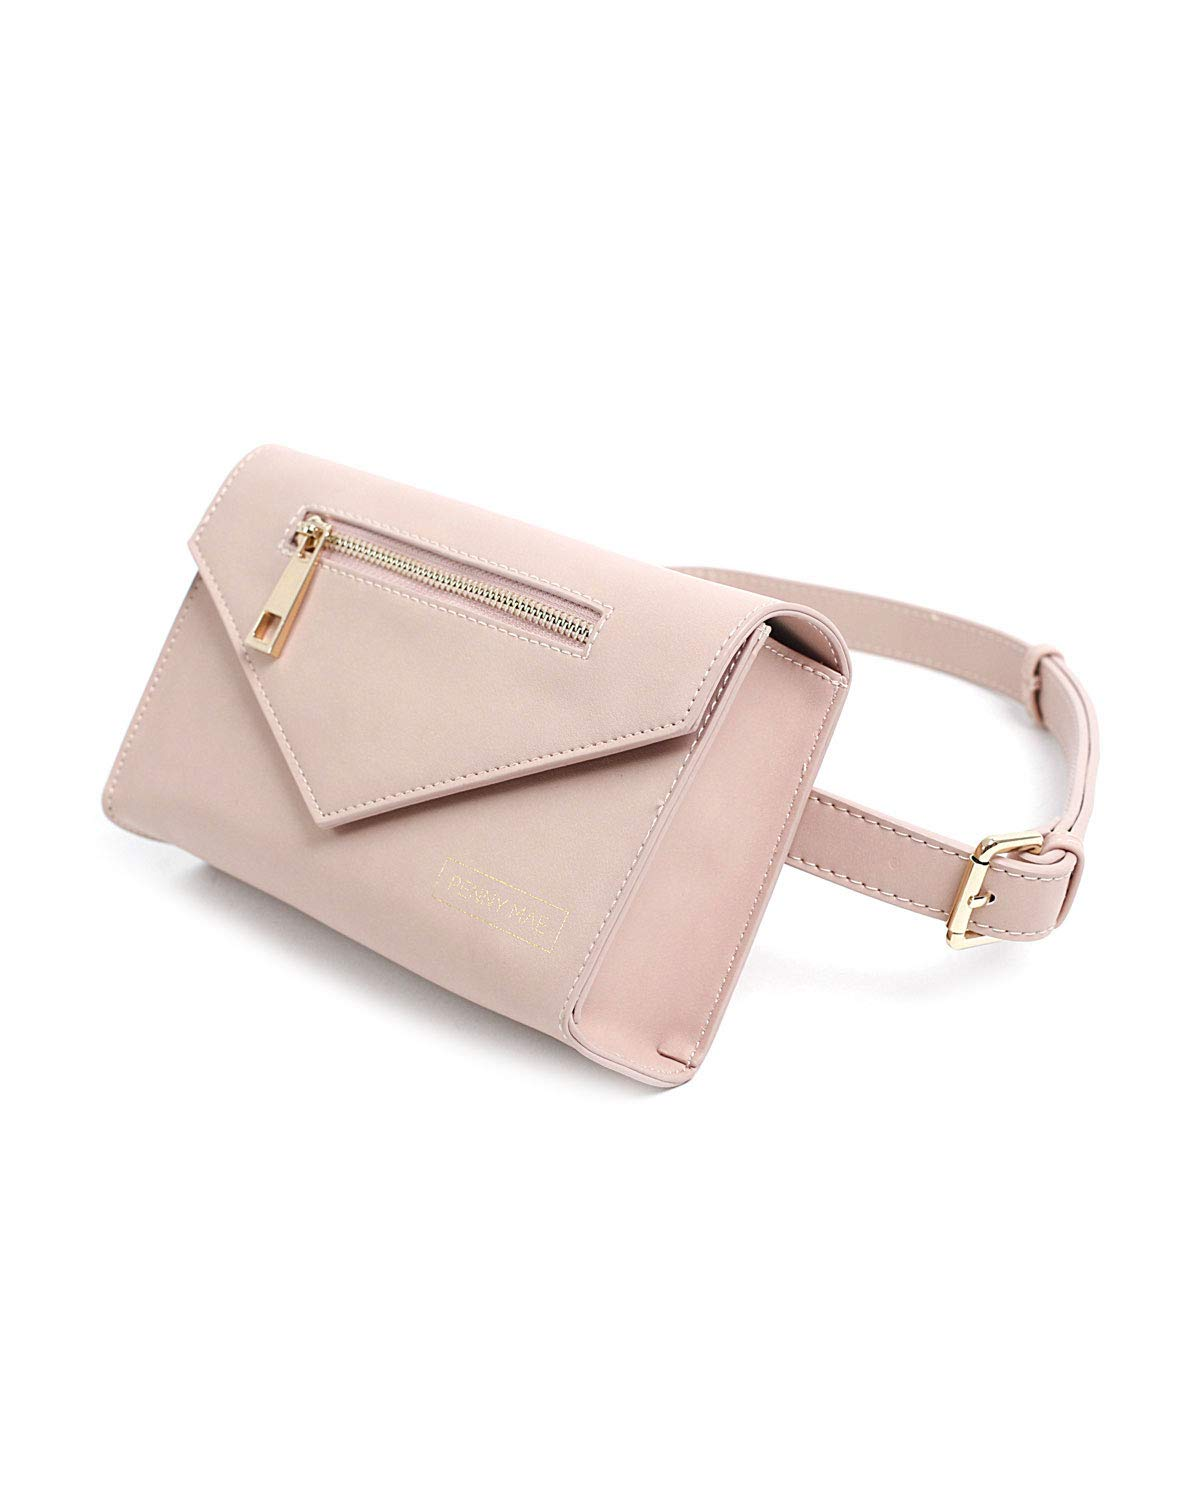 Penny Mae Abigail Leather Fanny Pack Waist Bag | Blush Pink Cute Trendy Womens All Purpose Travel Bag